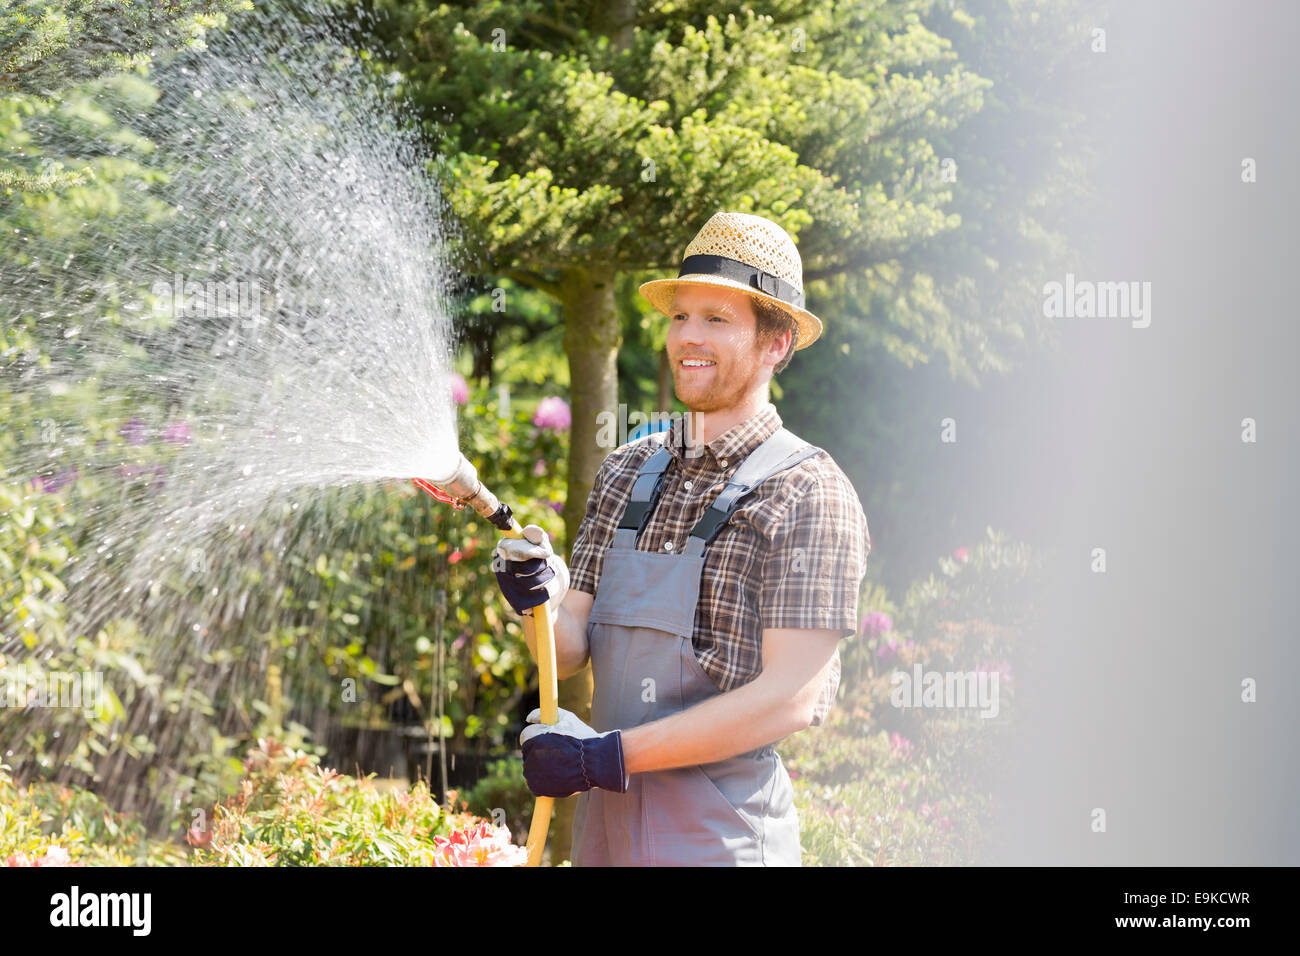 Happy man watering plants at garden - Stock Image